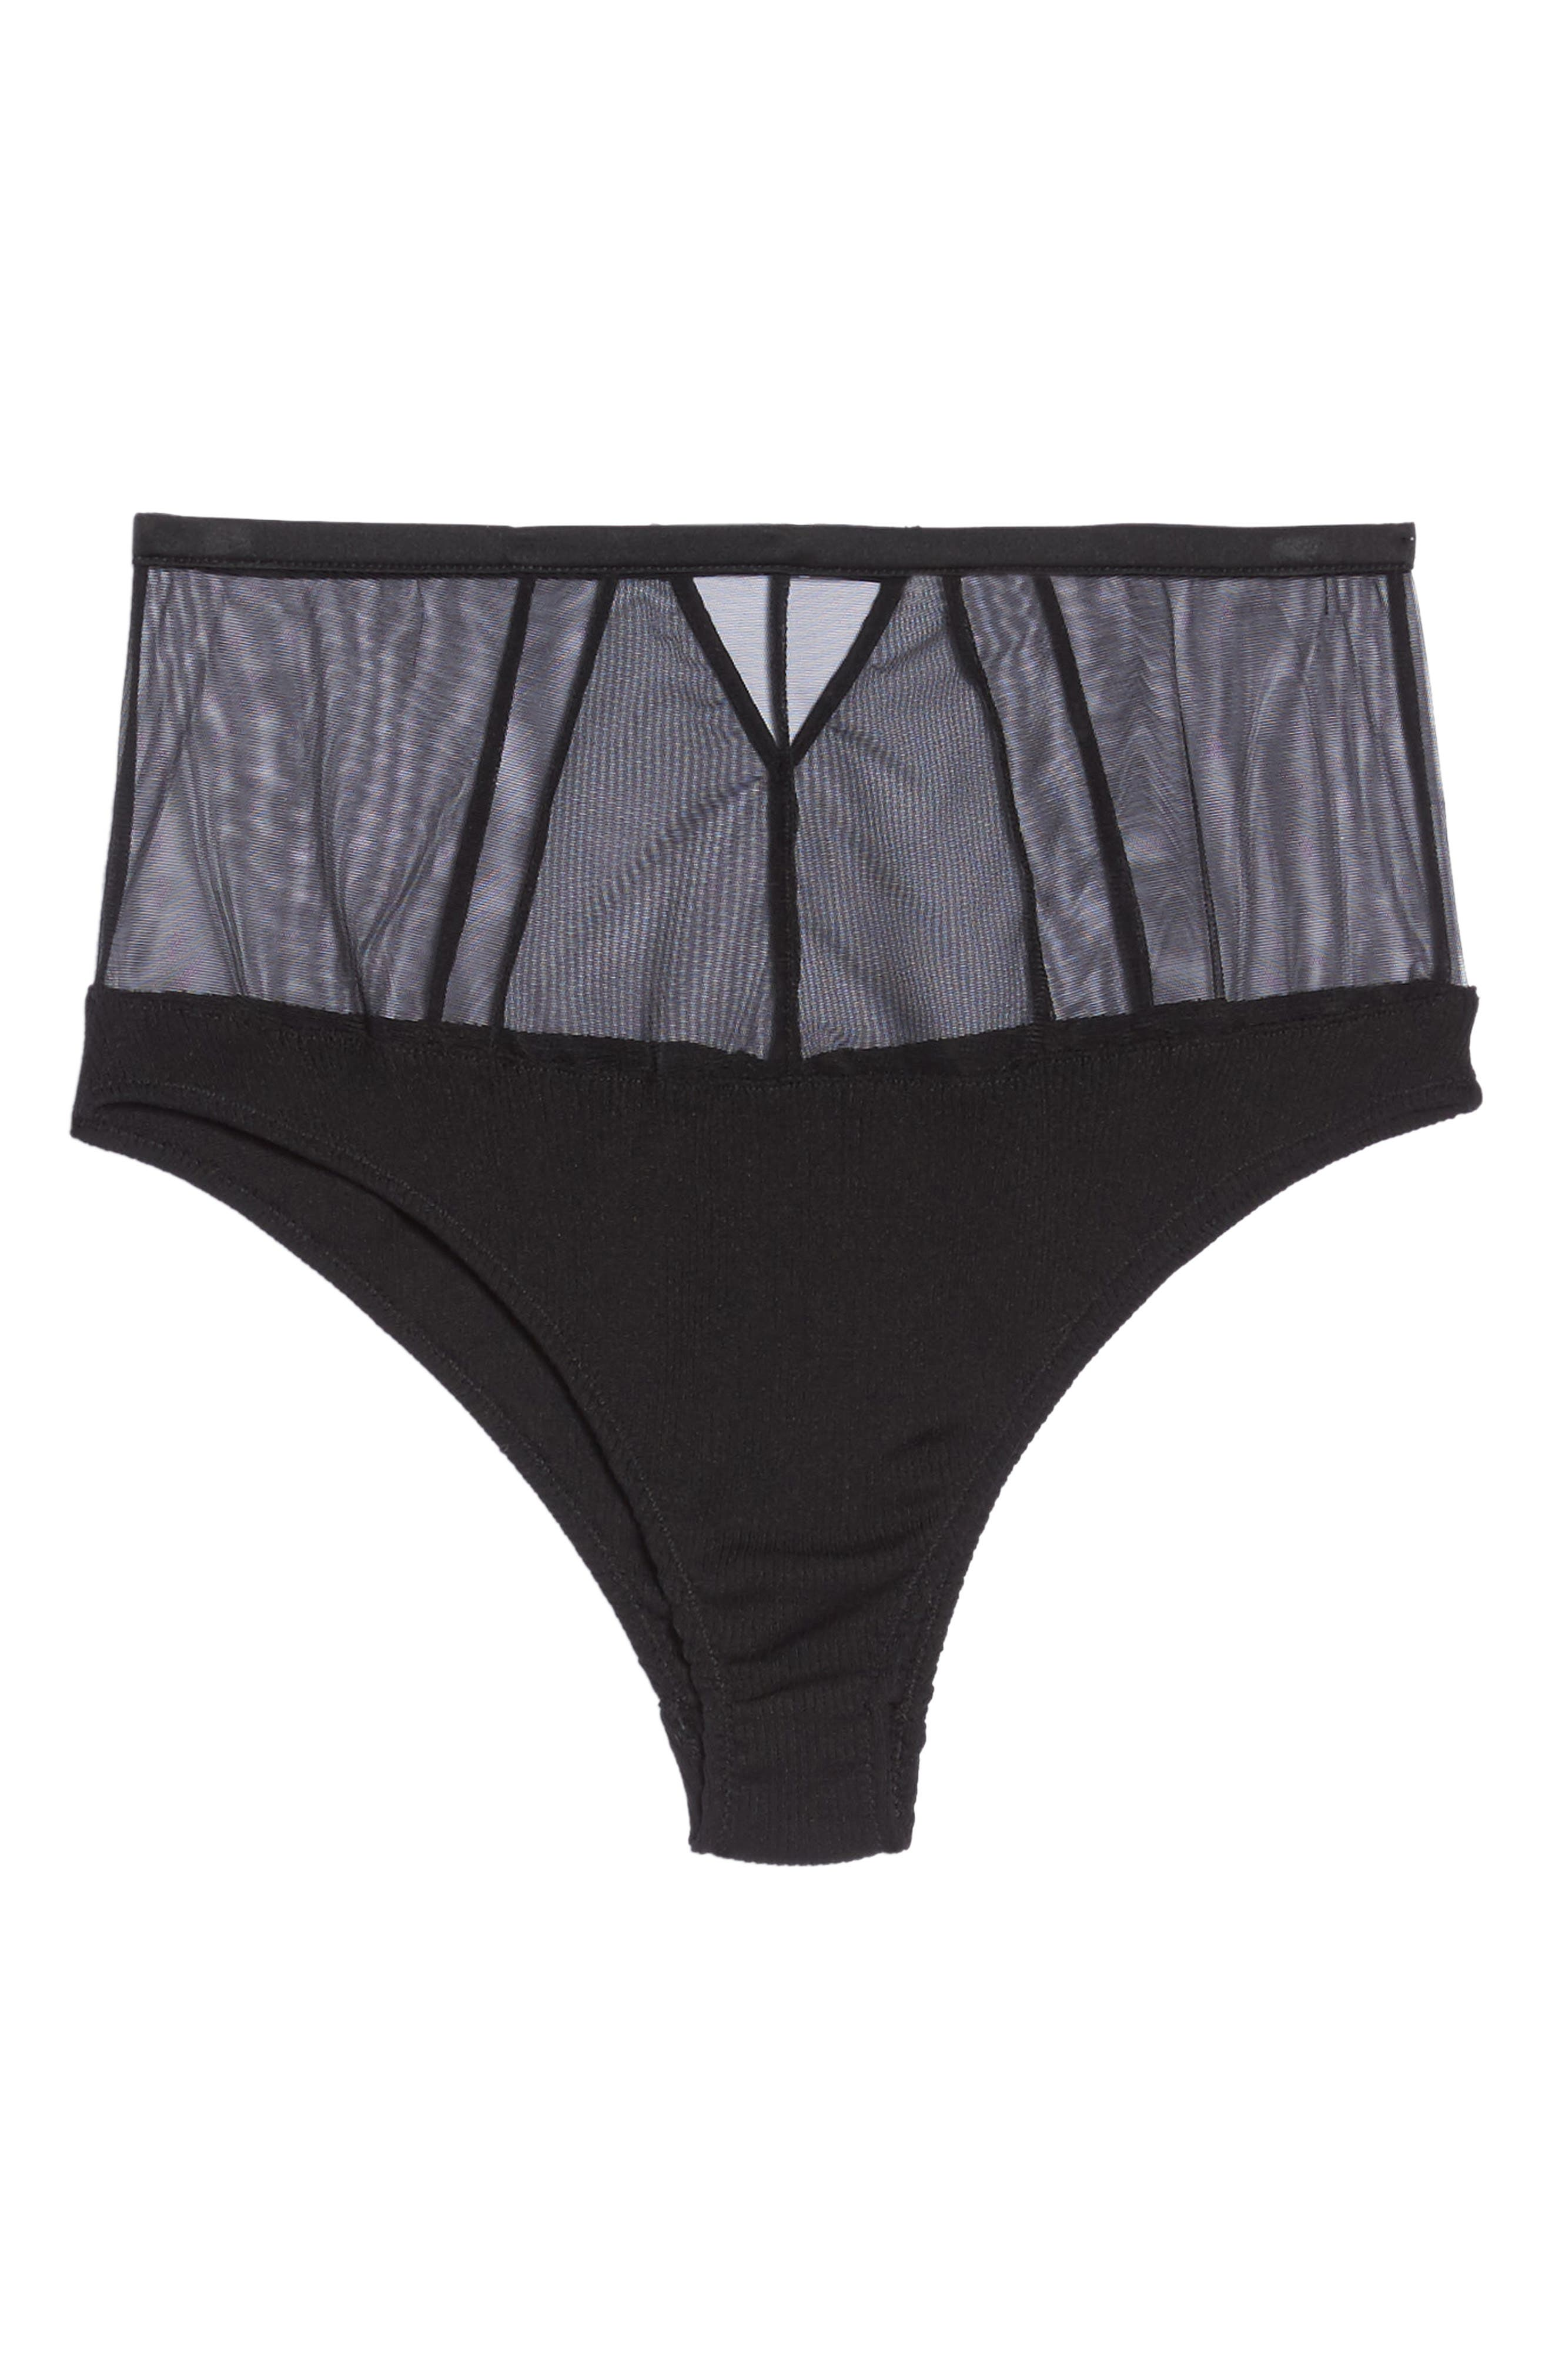 High Waist Mesh Panties,                             Alternate thumbnail 5, color,                             002